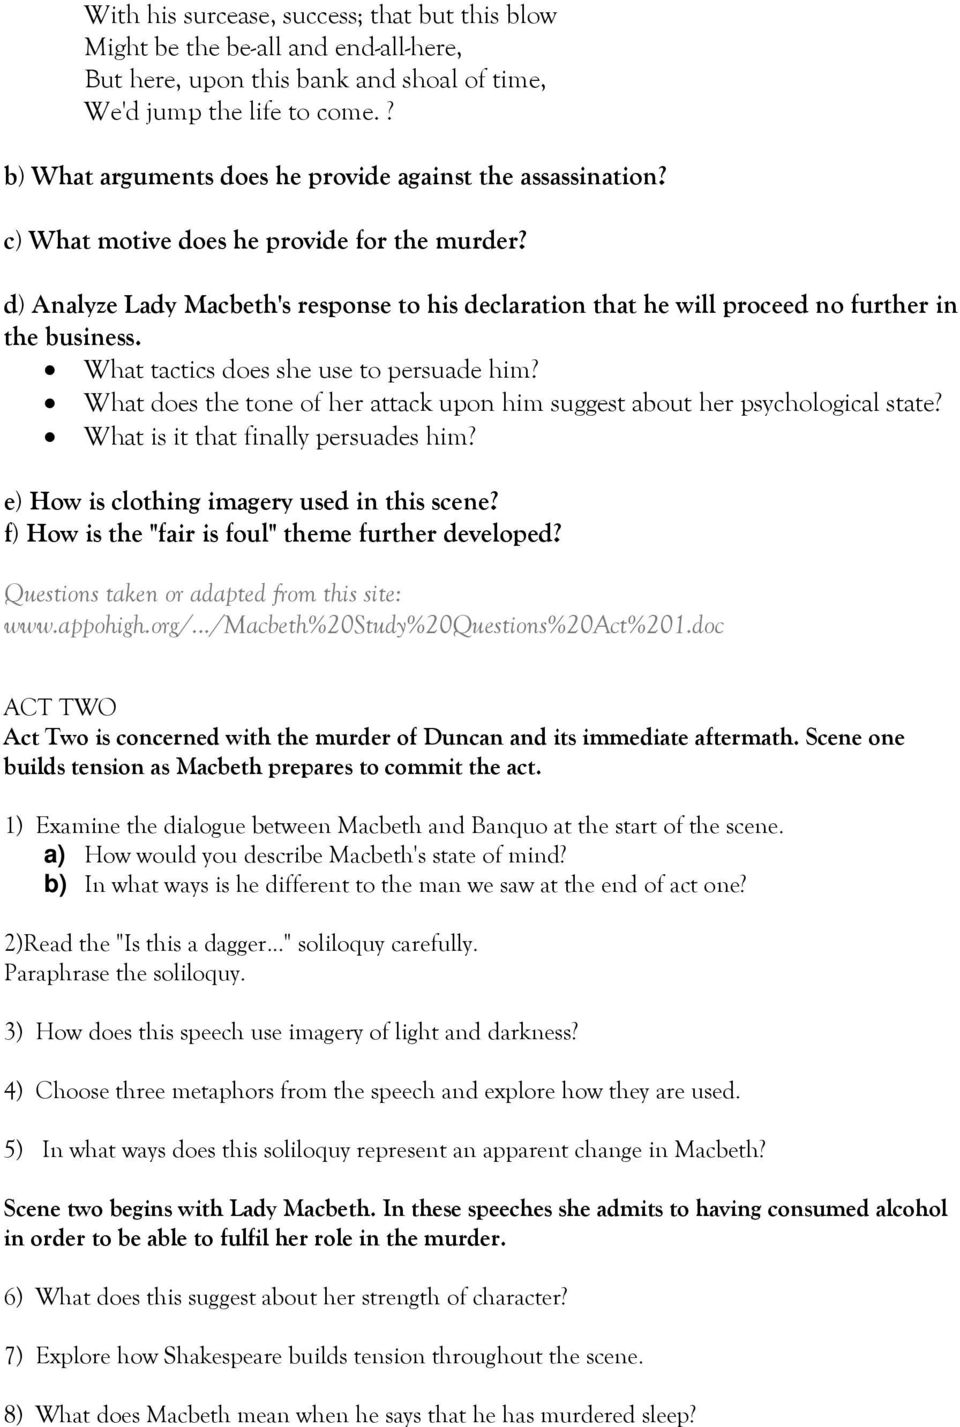 macbeth study questions pdf d analyze lady macbeth s response to his declaration that he will proceed no further in